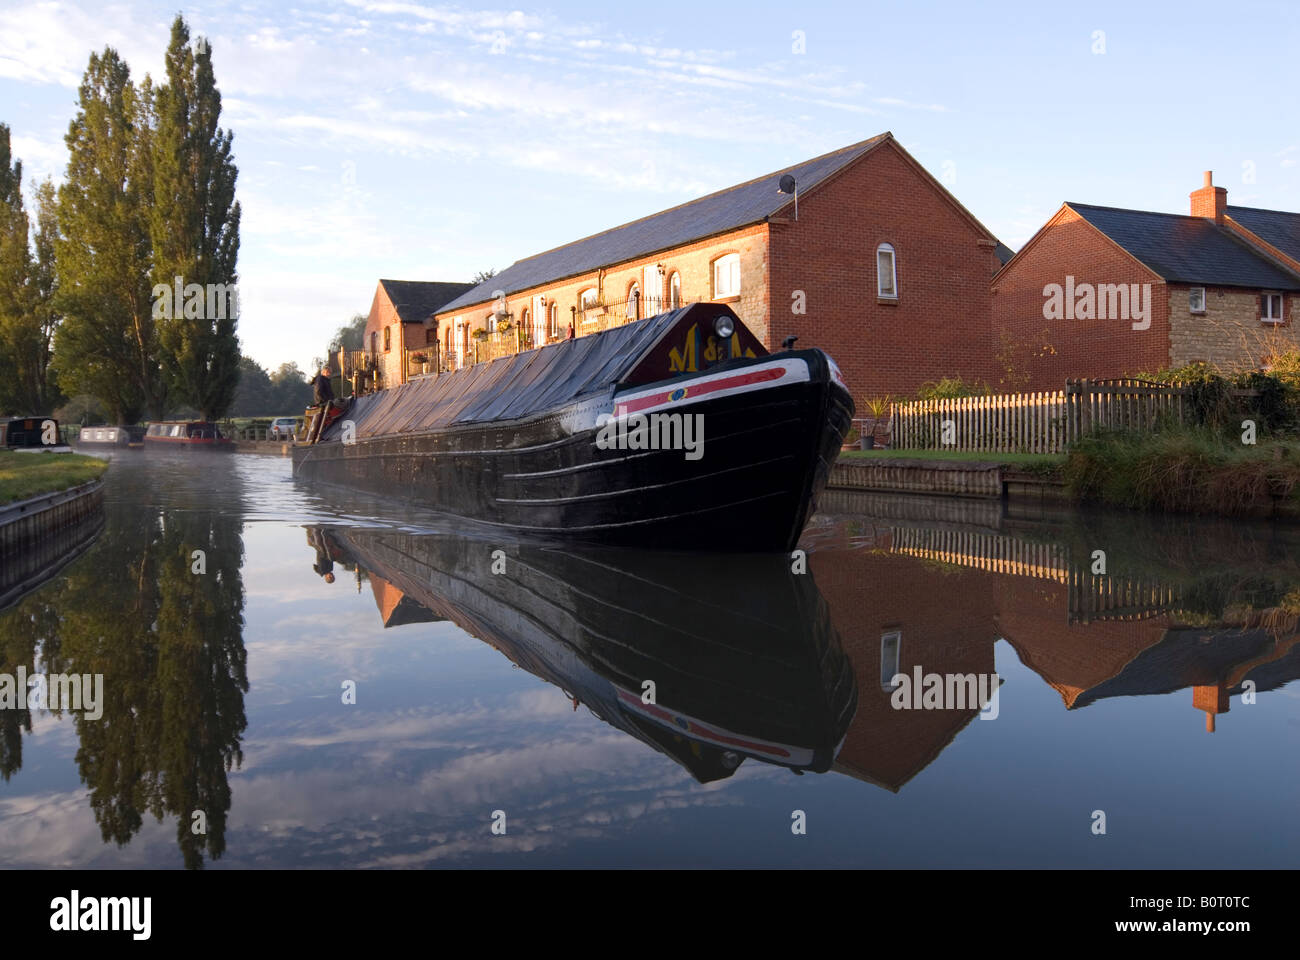 Doug Blane Traditional working narrowboat navigating at Cosgrove on the Grand Union CanalStock Photo